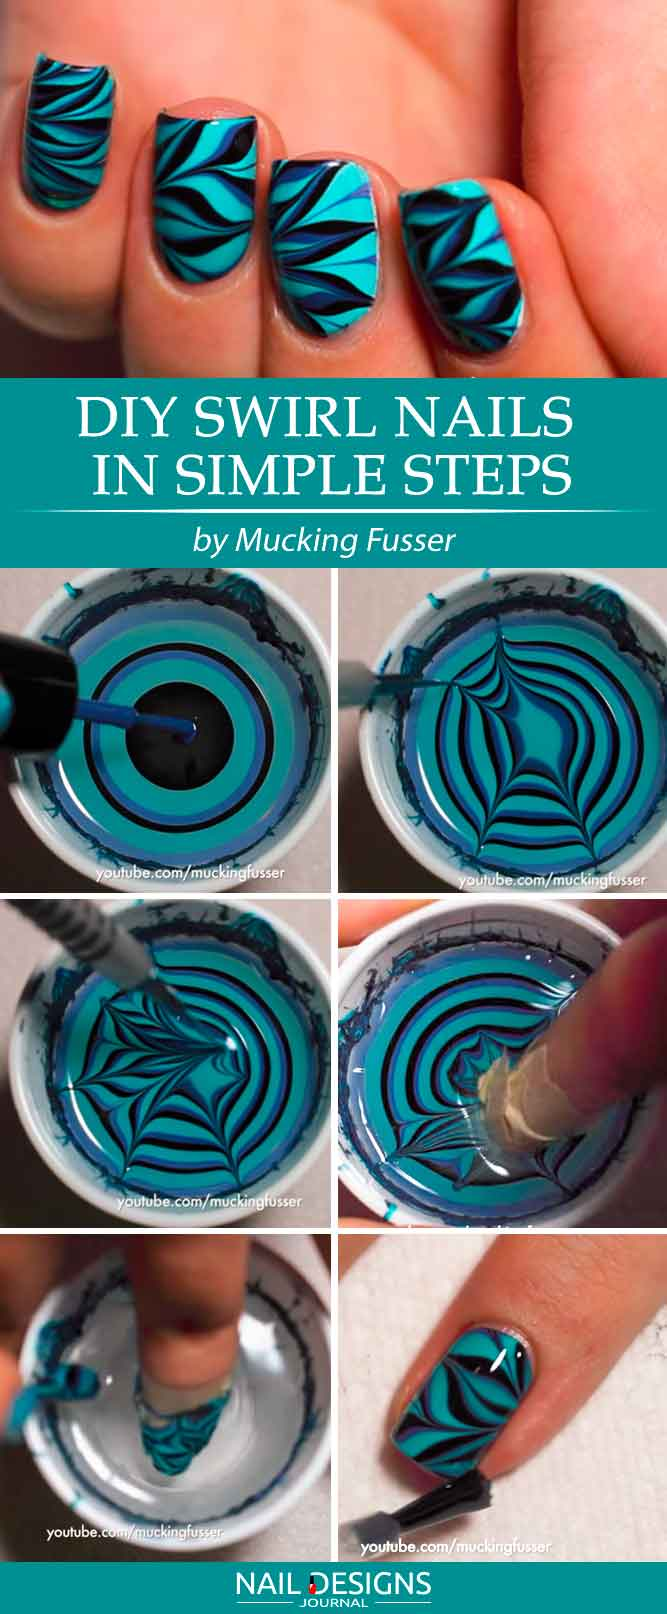 Swirl Nails In Simple Steps